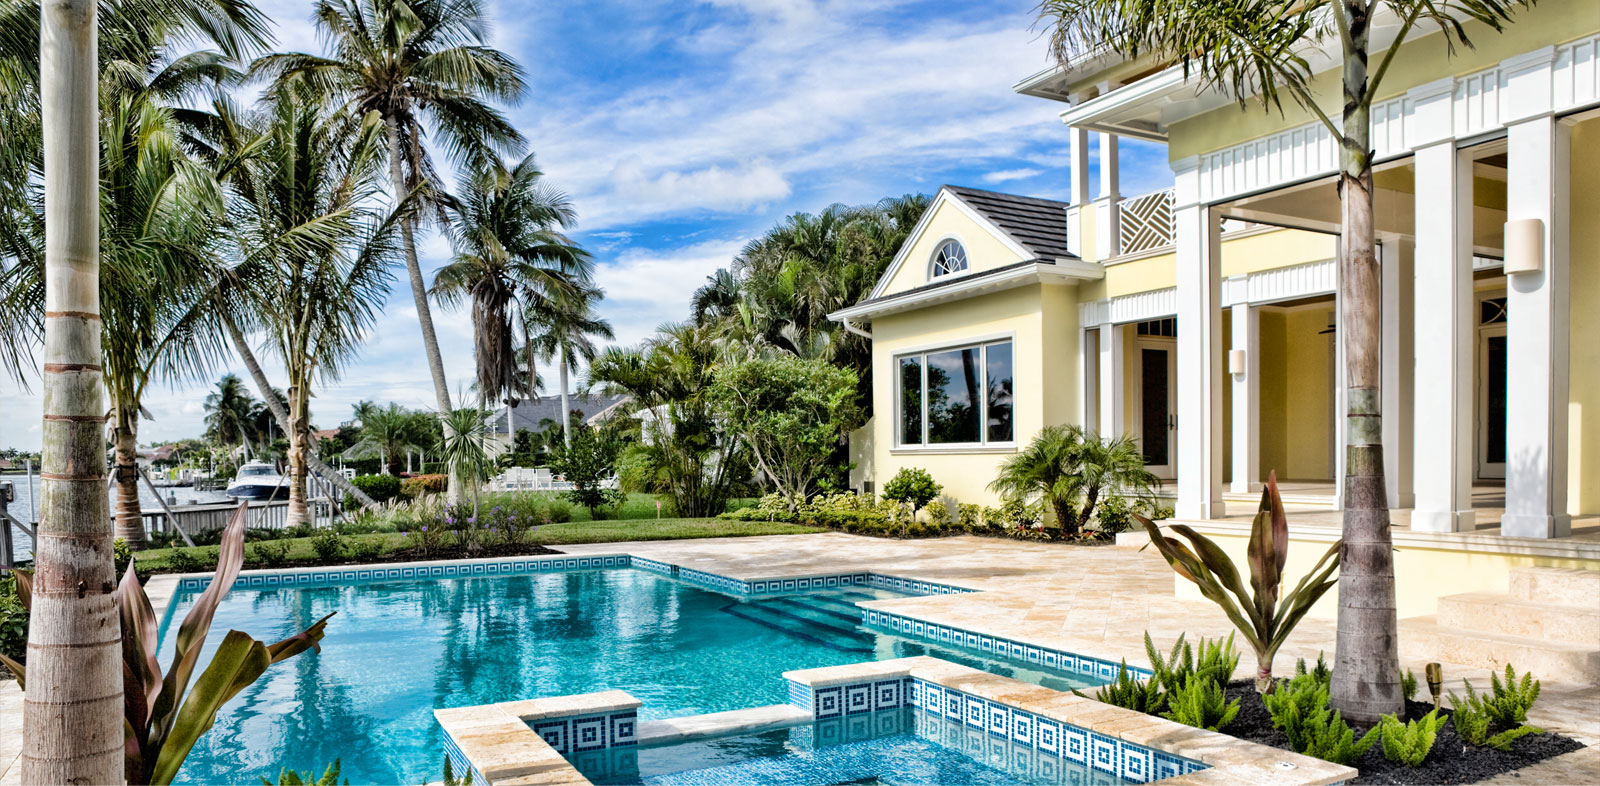 A luxury home with swimming pool and coconut trees